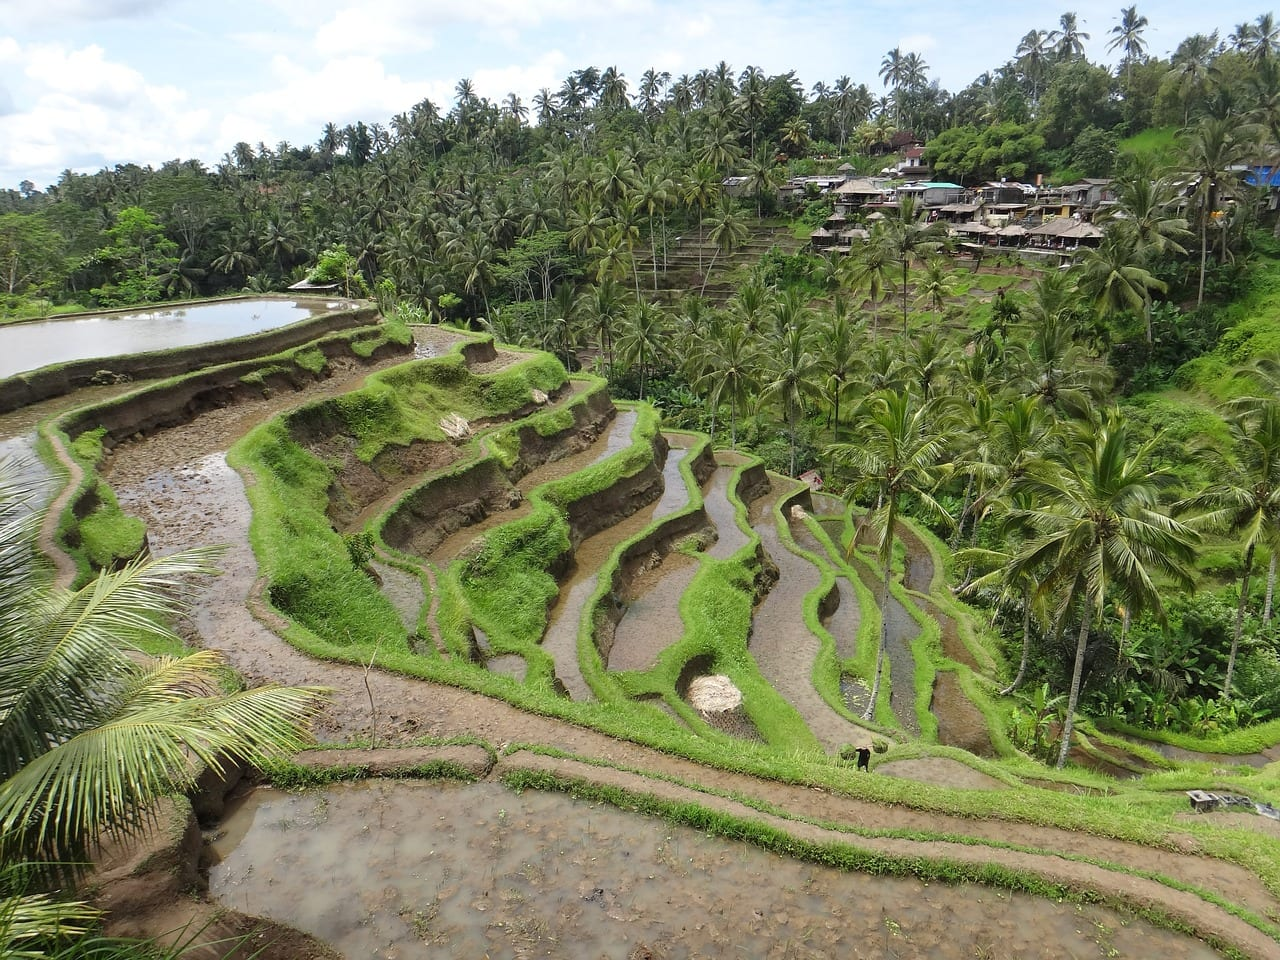 Visit the Bali rice terraces for some spectacular photos!